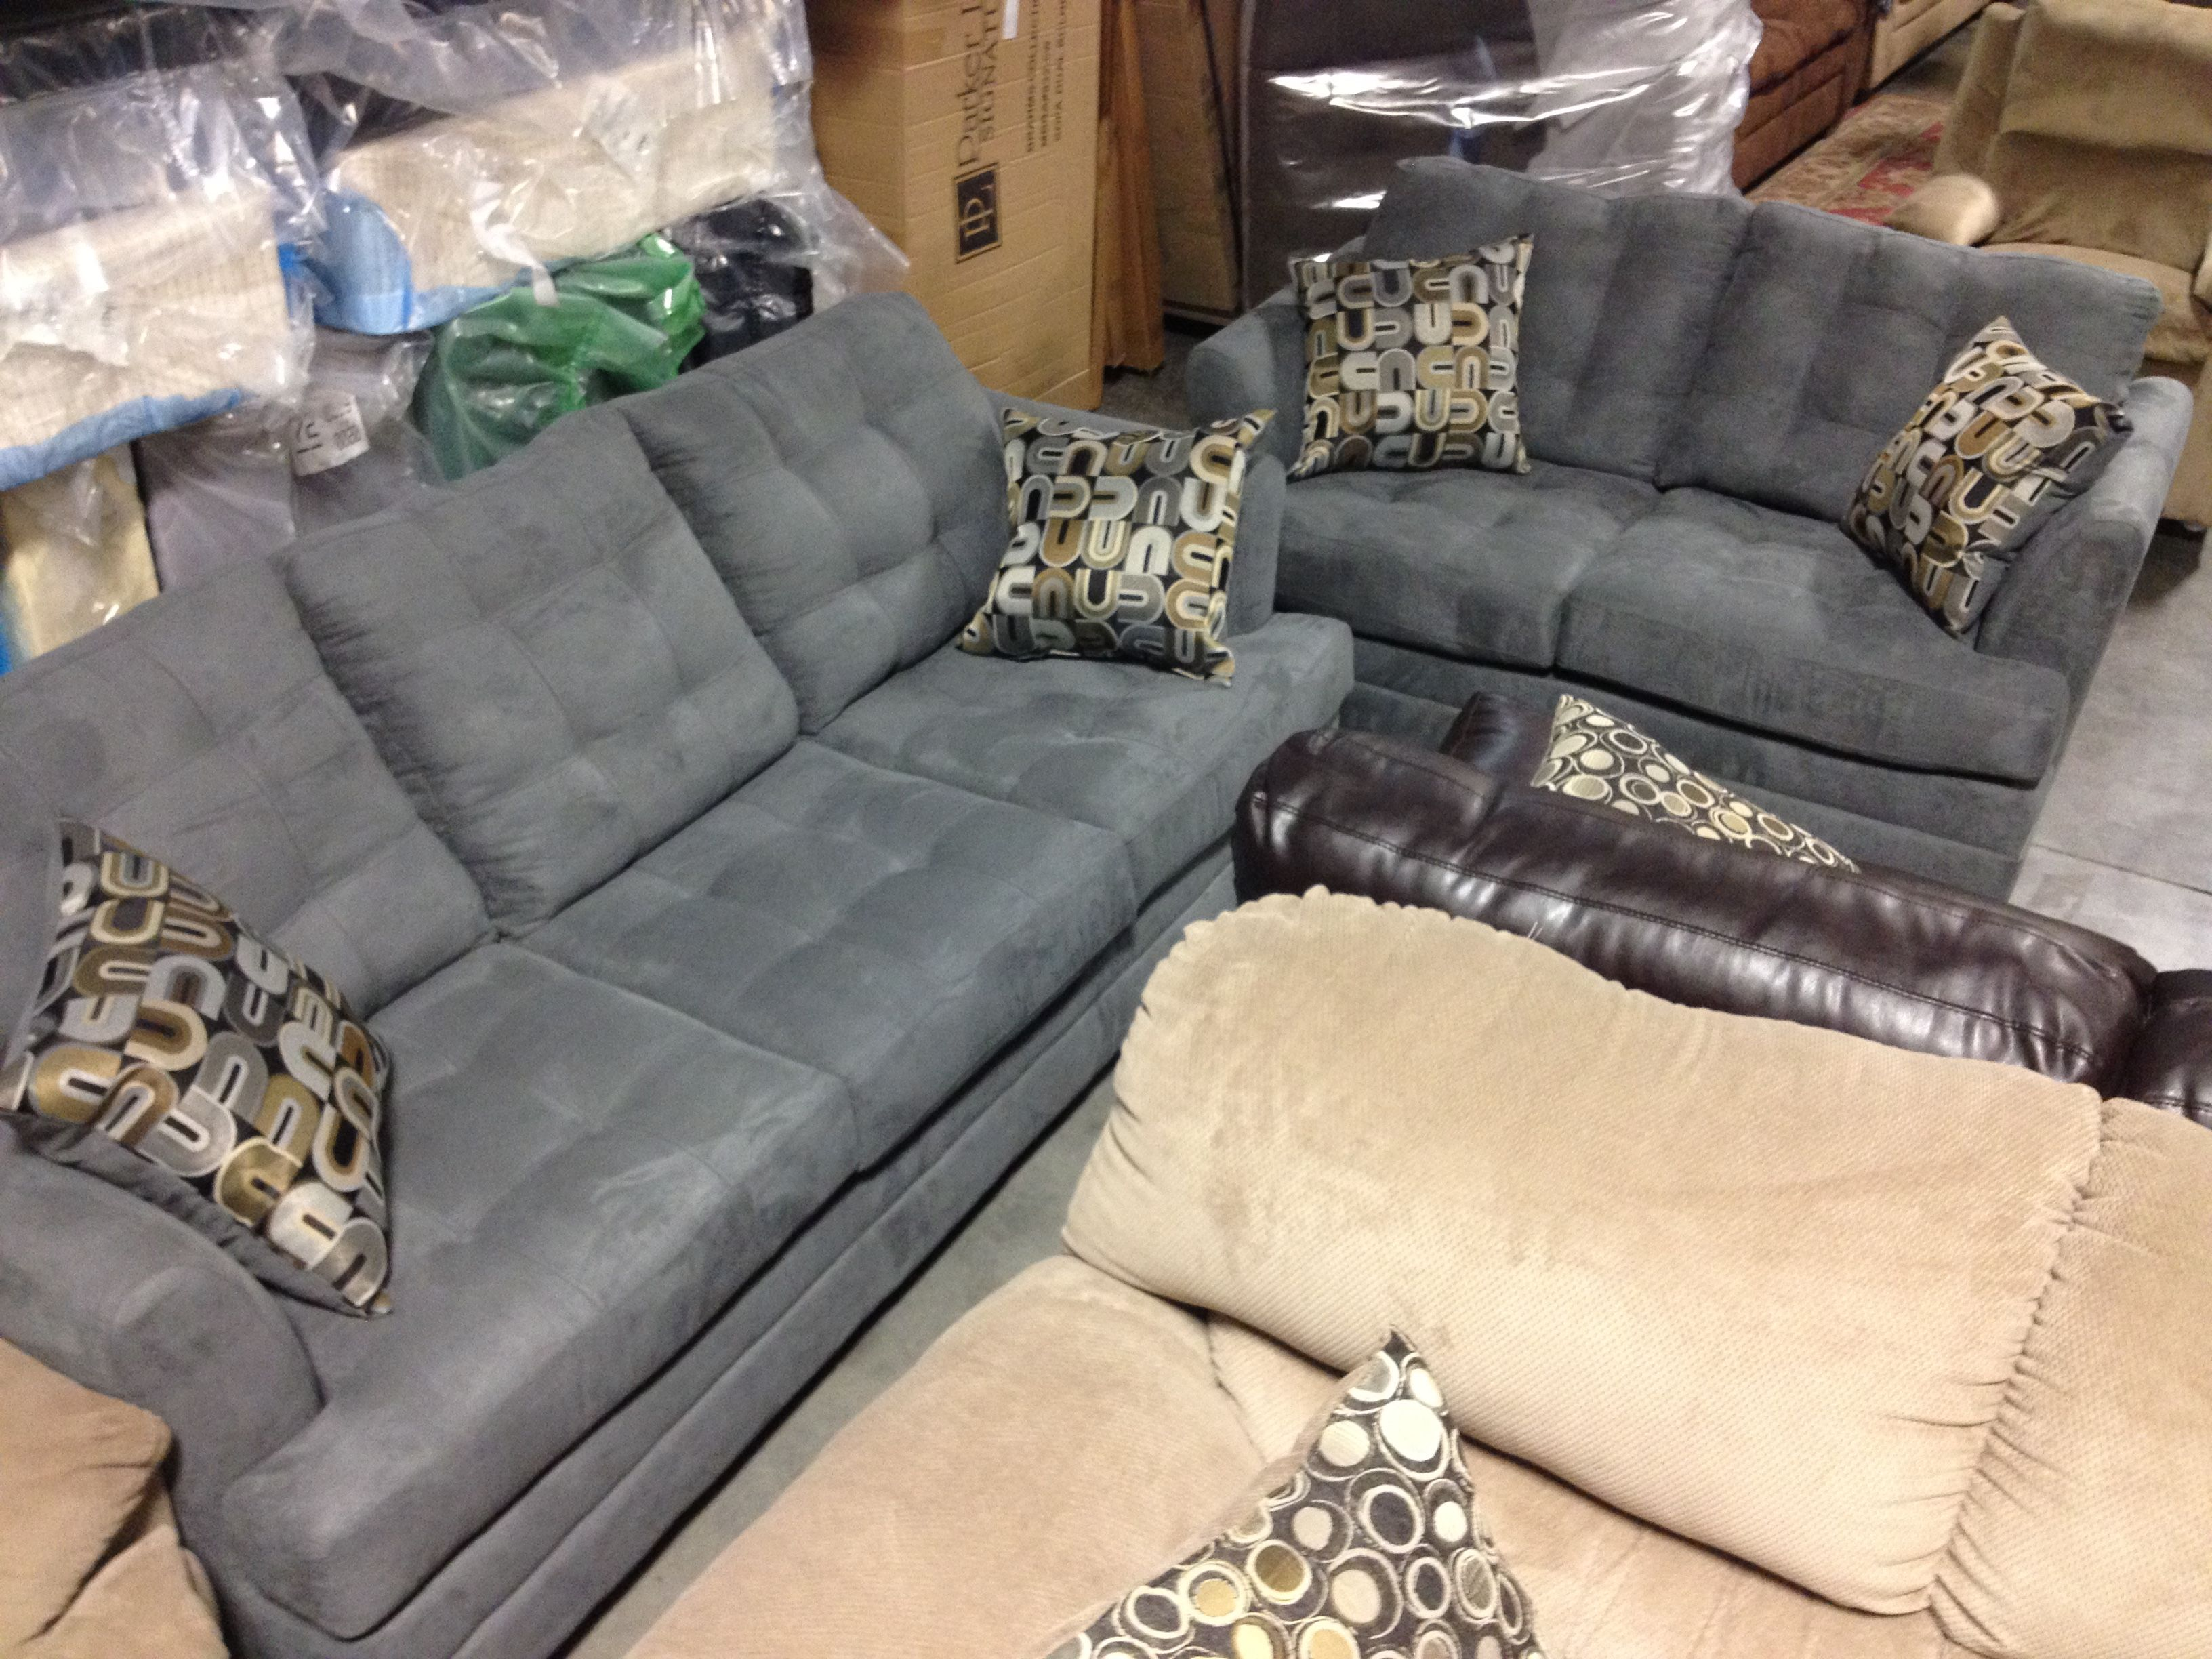 simmons polster sectional simmons polster liege simmons harbortown sofa simmons flanell holzkohle wohnzimmer